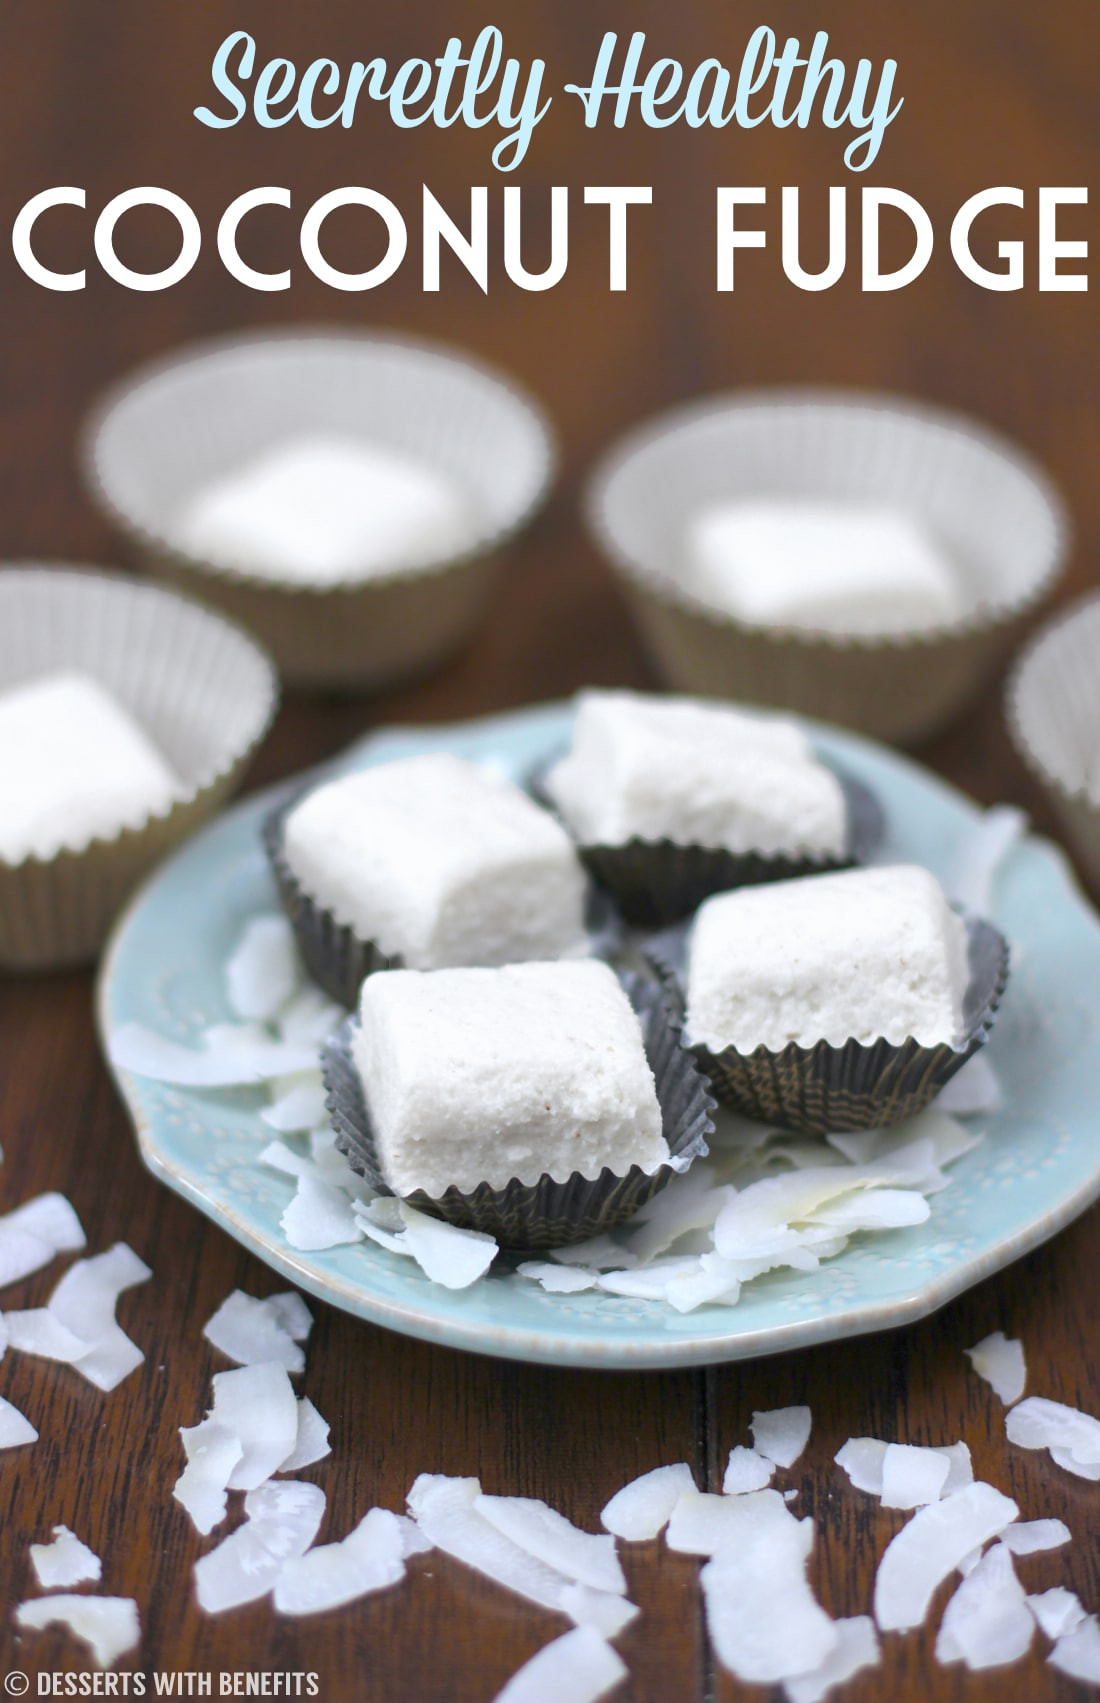 Healthy Low Fat Desserts  Healthy Coconut Fudge low fat Desserts with Benefits